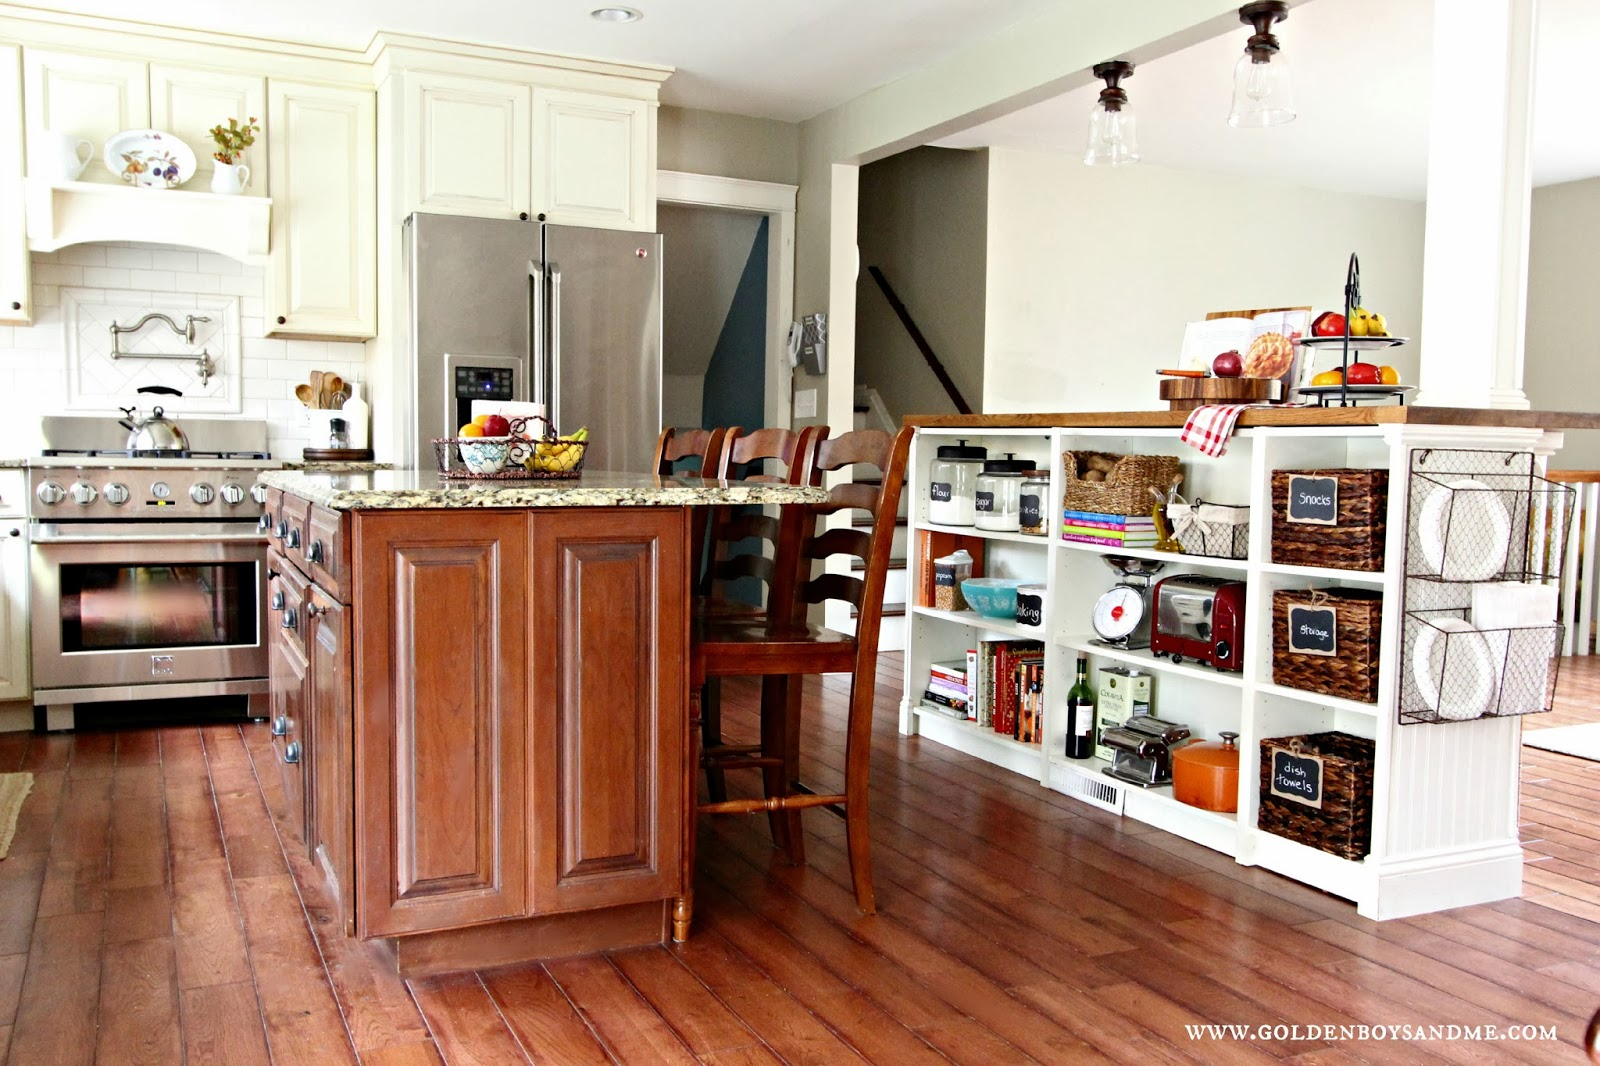 diy bookcase kitchen island. Brilliant Diy Ikea Hack Billy Bookshelves Kitchen Island Storage With Butcher Block And  Bead Boardwww Inside Diy Bookcase Golden Boys Me